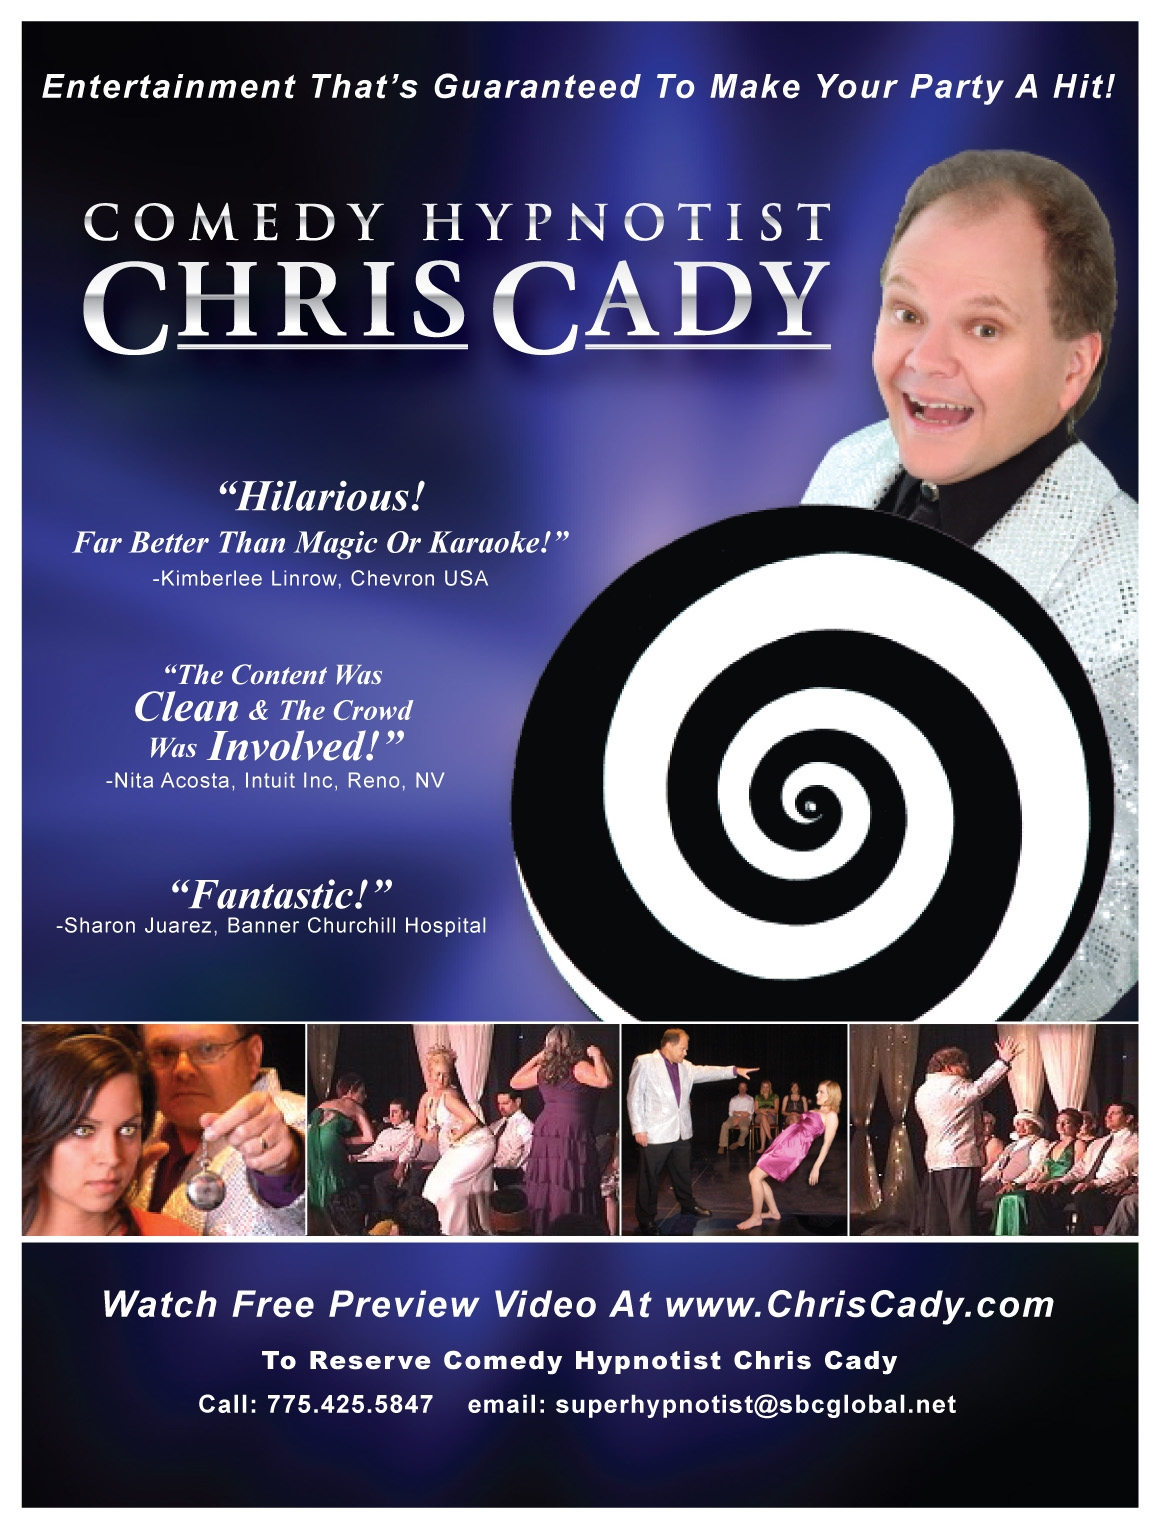 Corporate hypnosis shows hypnotist chris cady